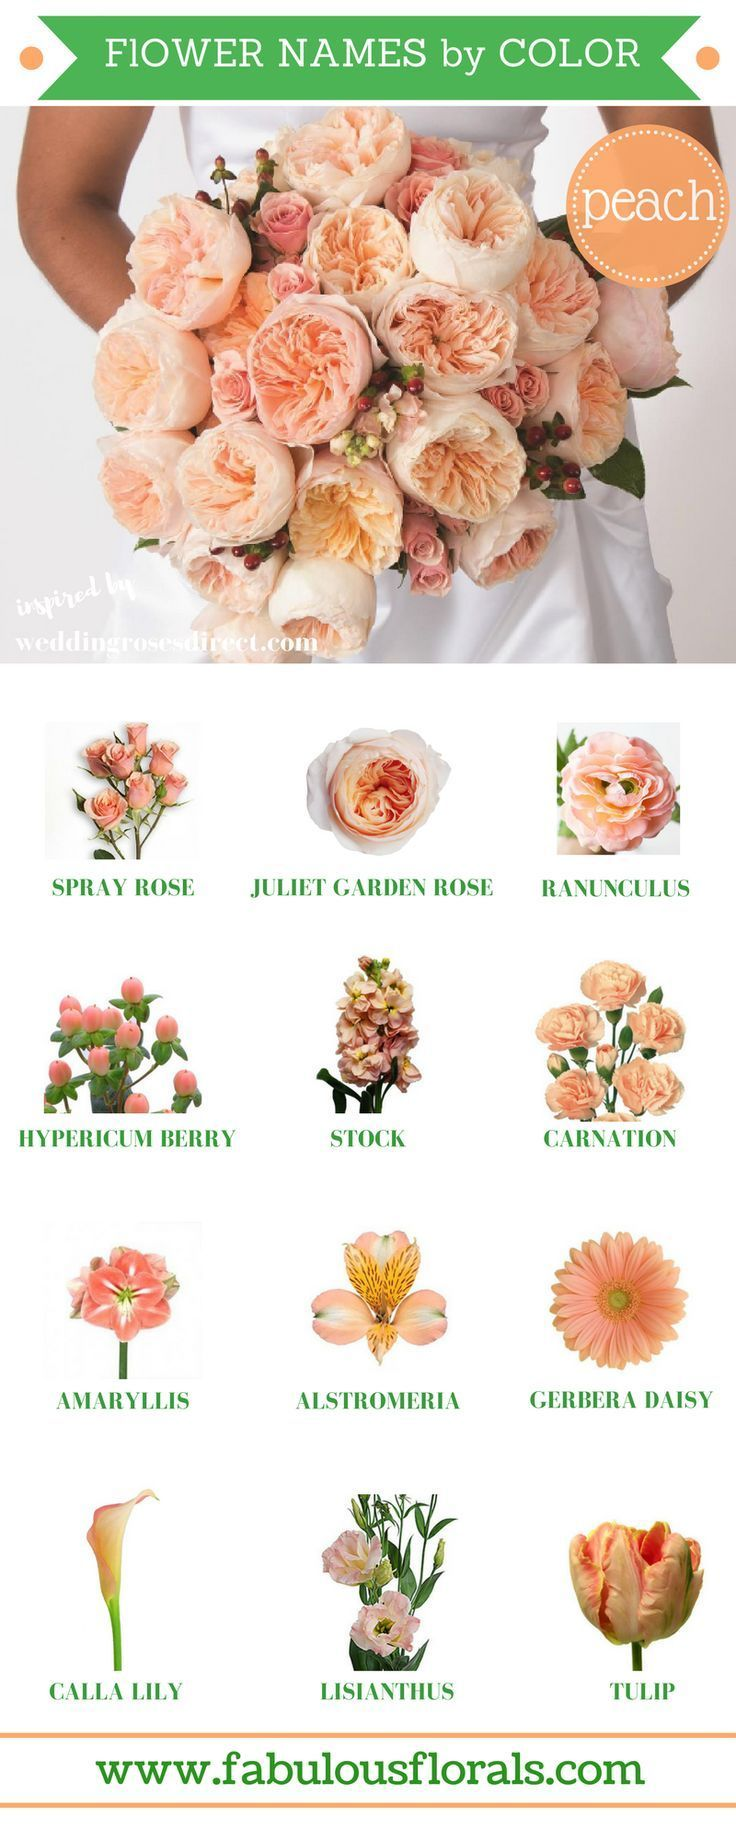 163 Beautiful Types Of Flowers A To Z With Pictures Wedding Flower Types Wedding Flower Trends Peach Wedding Flowers